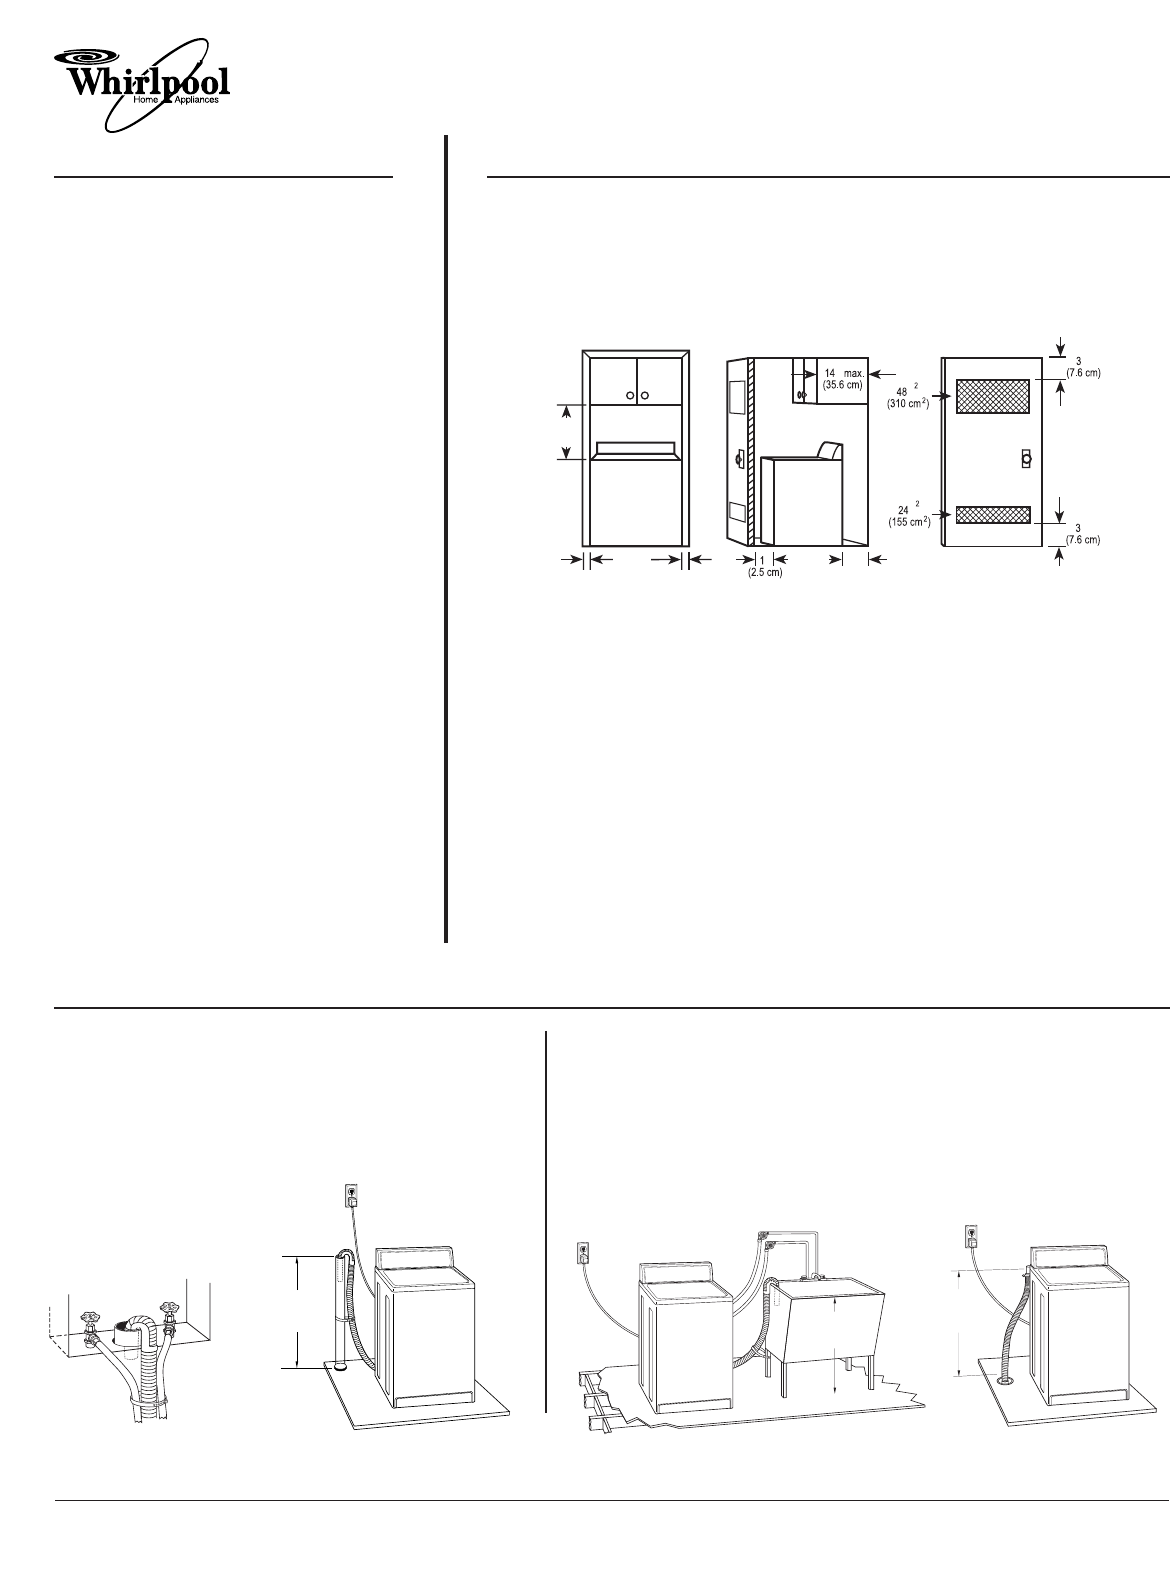 Whirlpool Washer Wtw6600s User Guide Manualsonlinecom Coin Operated Wiring Diagram Manual